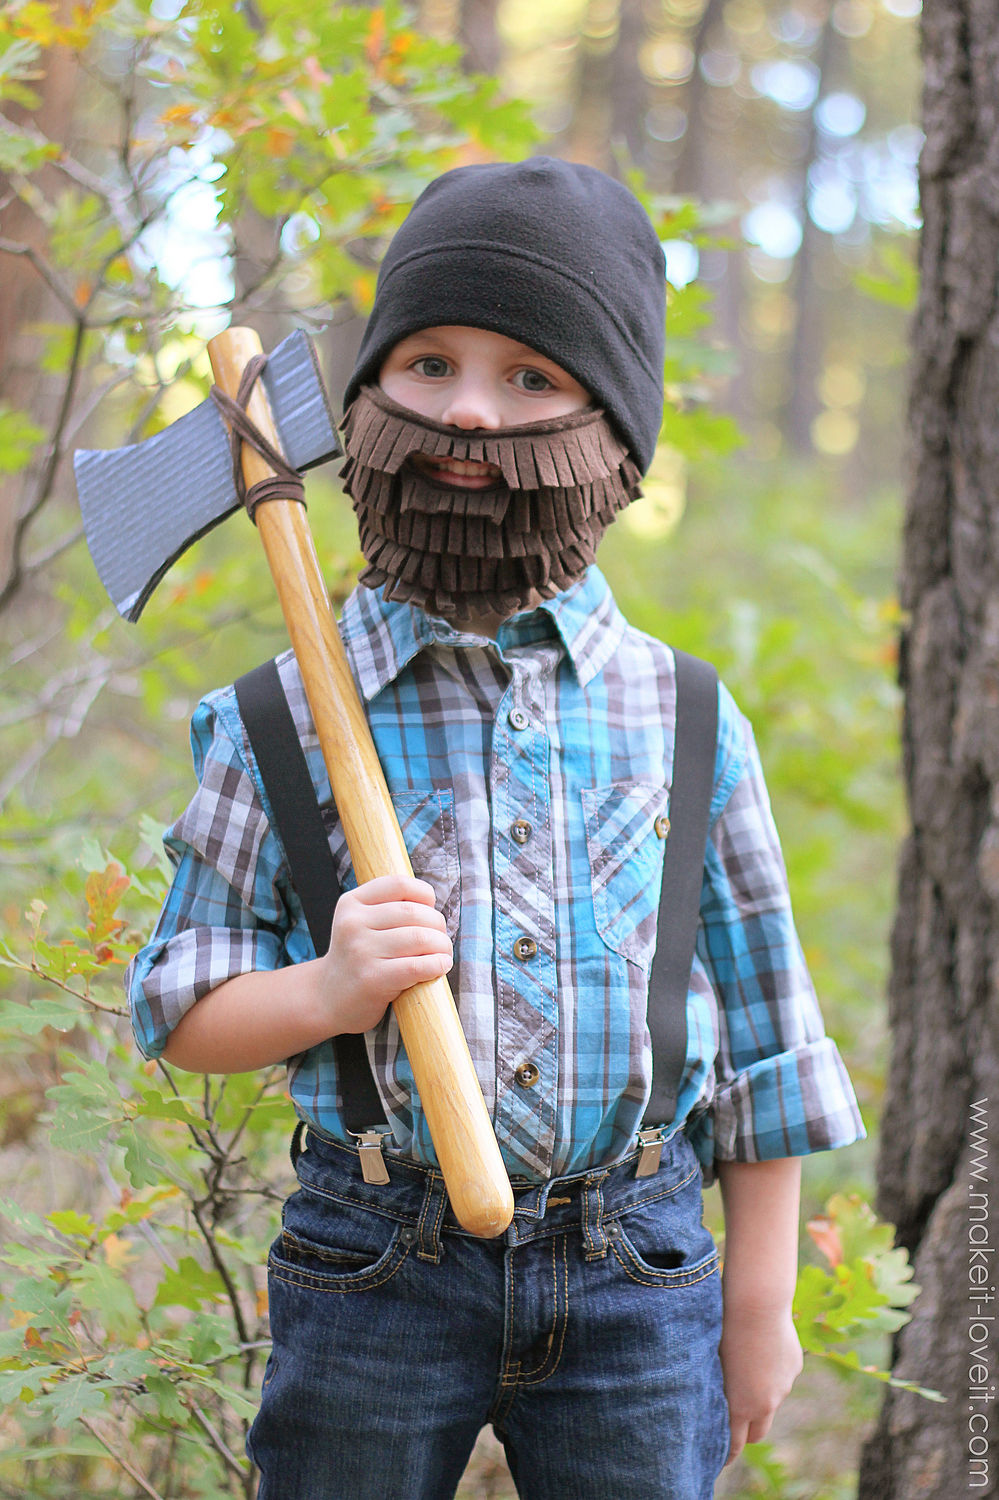 Lumberjack kids costume pictures photos and images for facebook lumberjack kids costume solutioingenieria Gallery